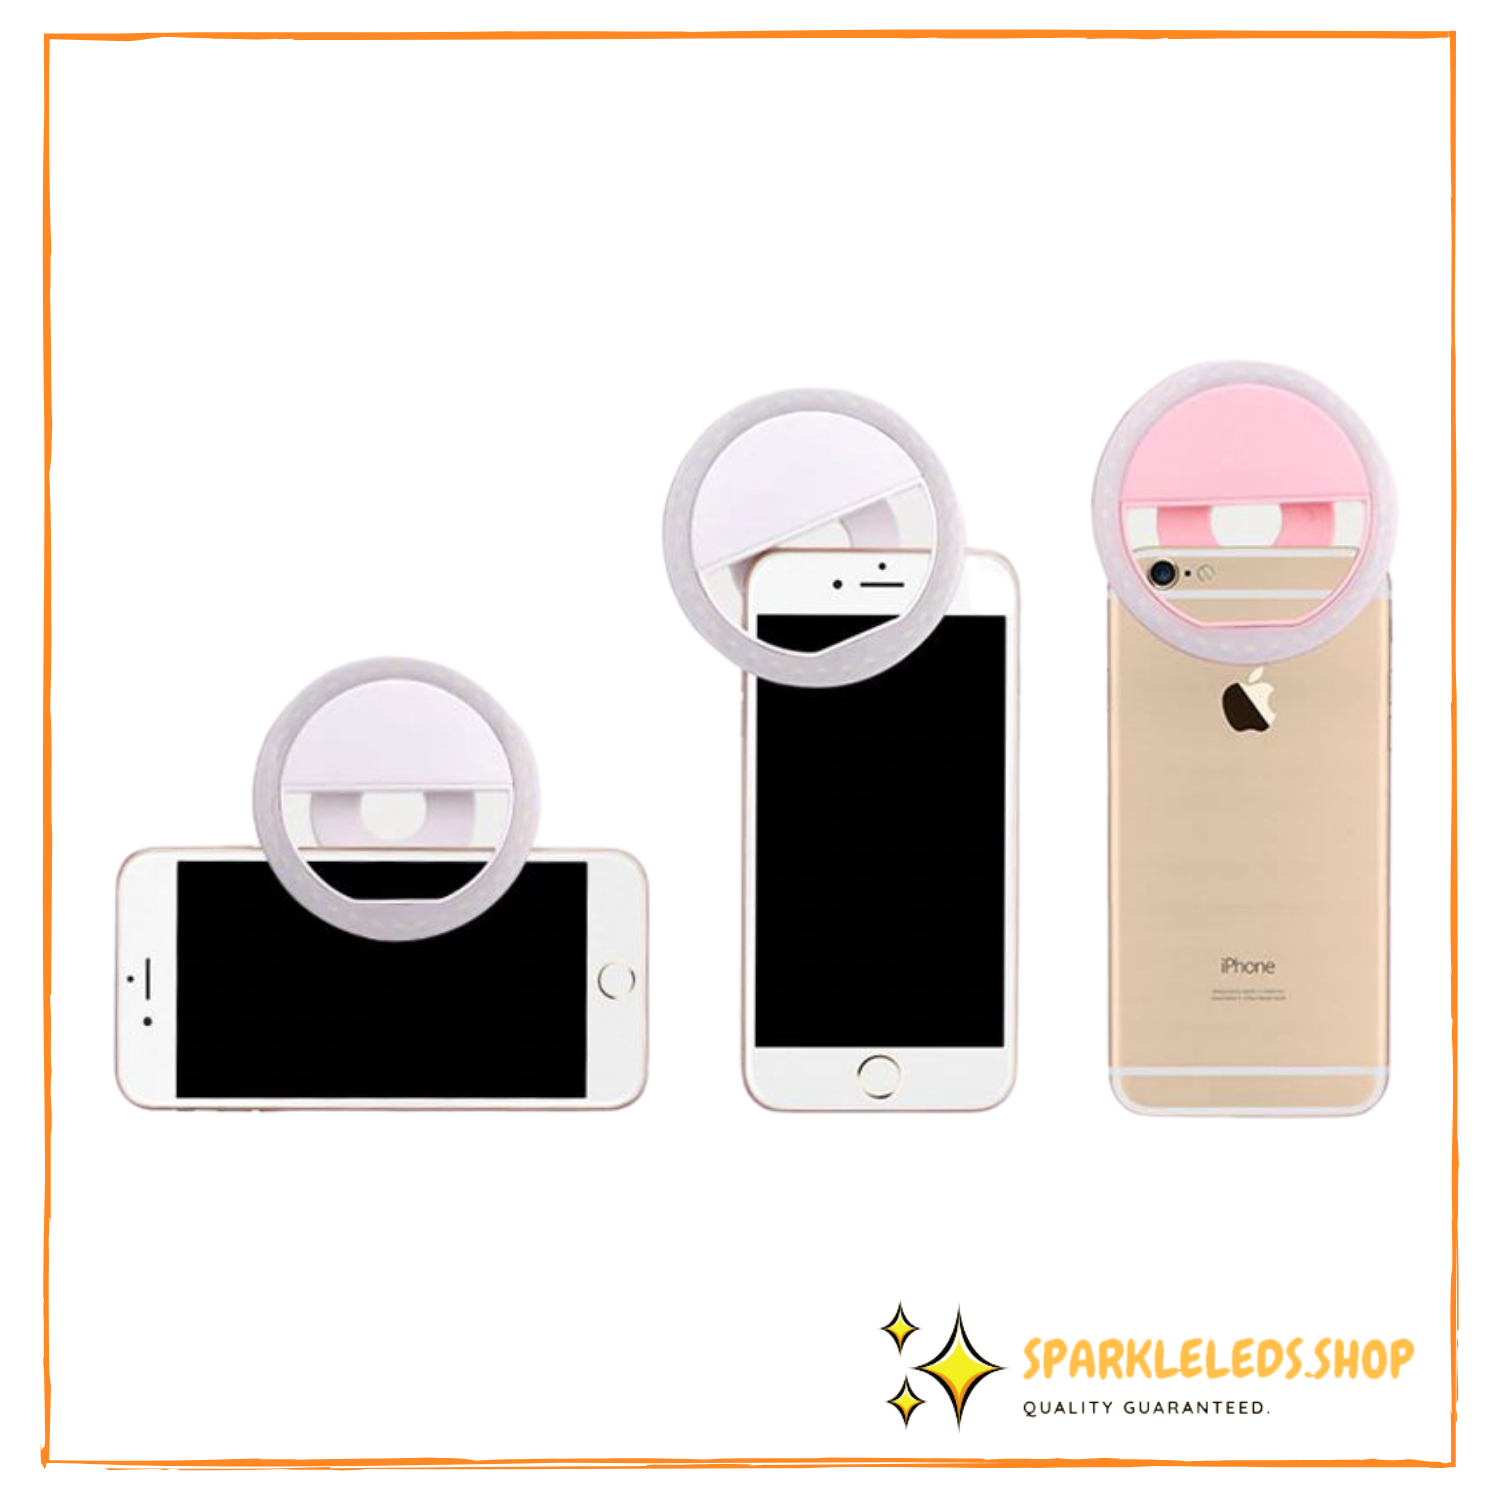 Mini LED Selfie Ring Light for Iphone/Android - USB Charger